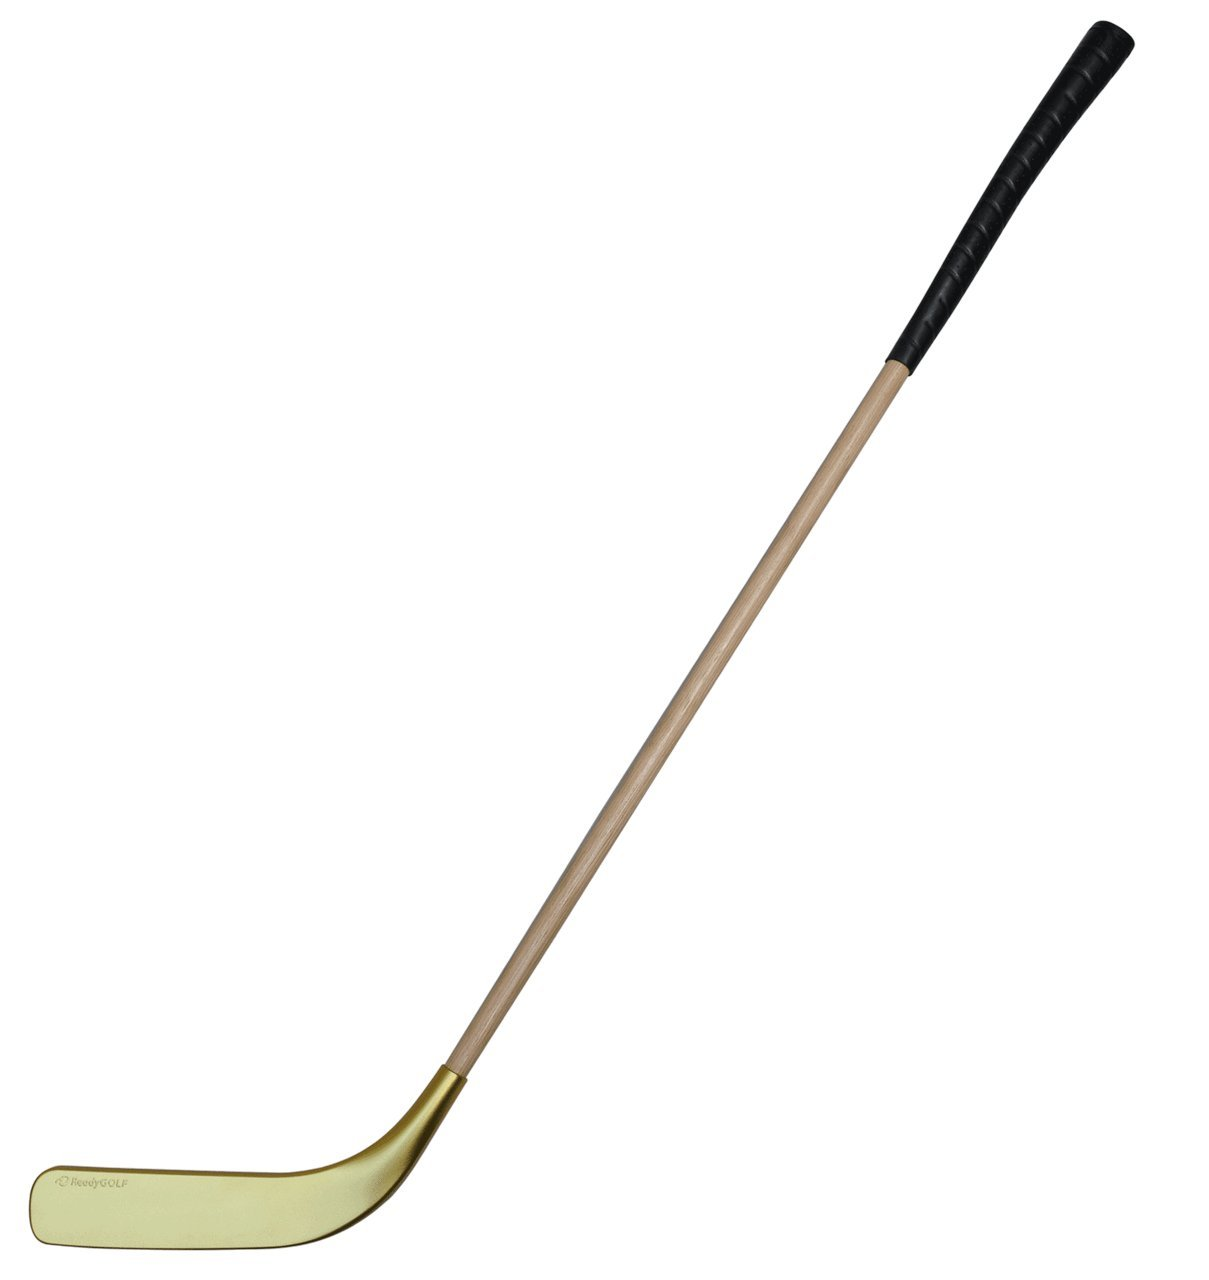 Hockey Stick Putter by ReadyGOLF (Includes Free Putter Cover)